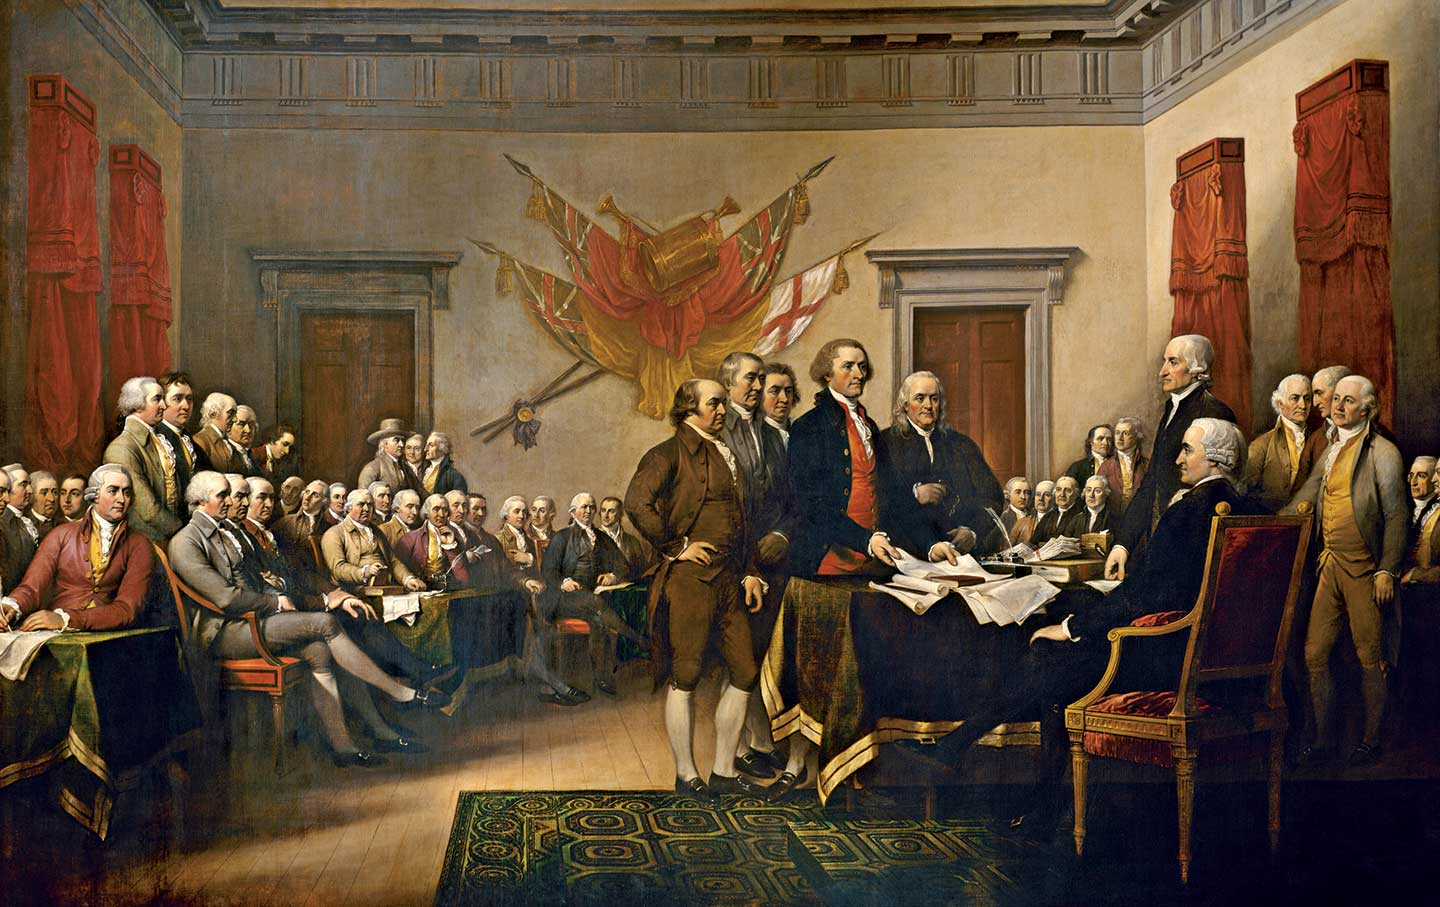 declaration of independence painting by John Trumbull